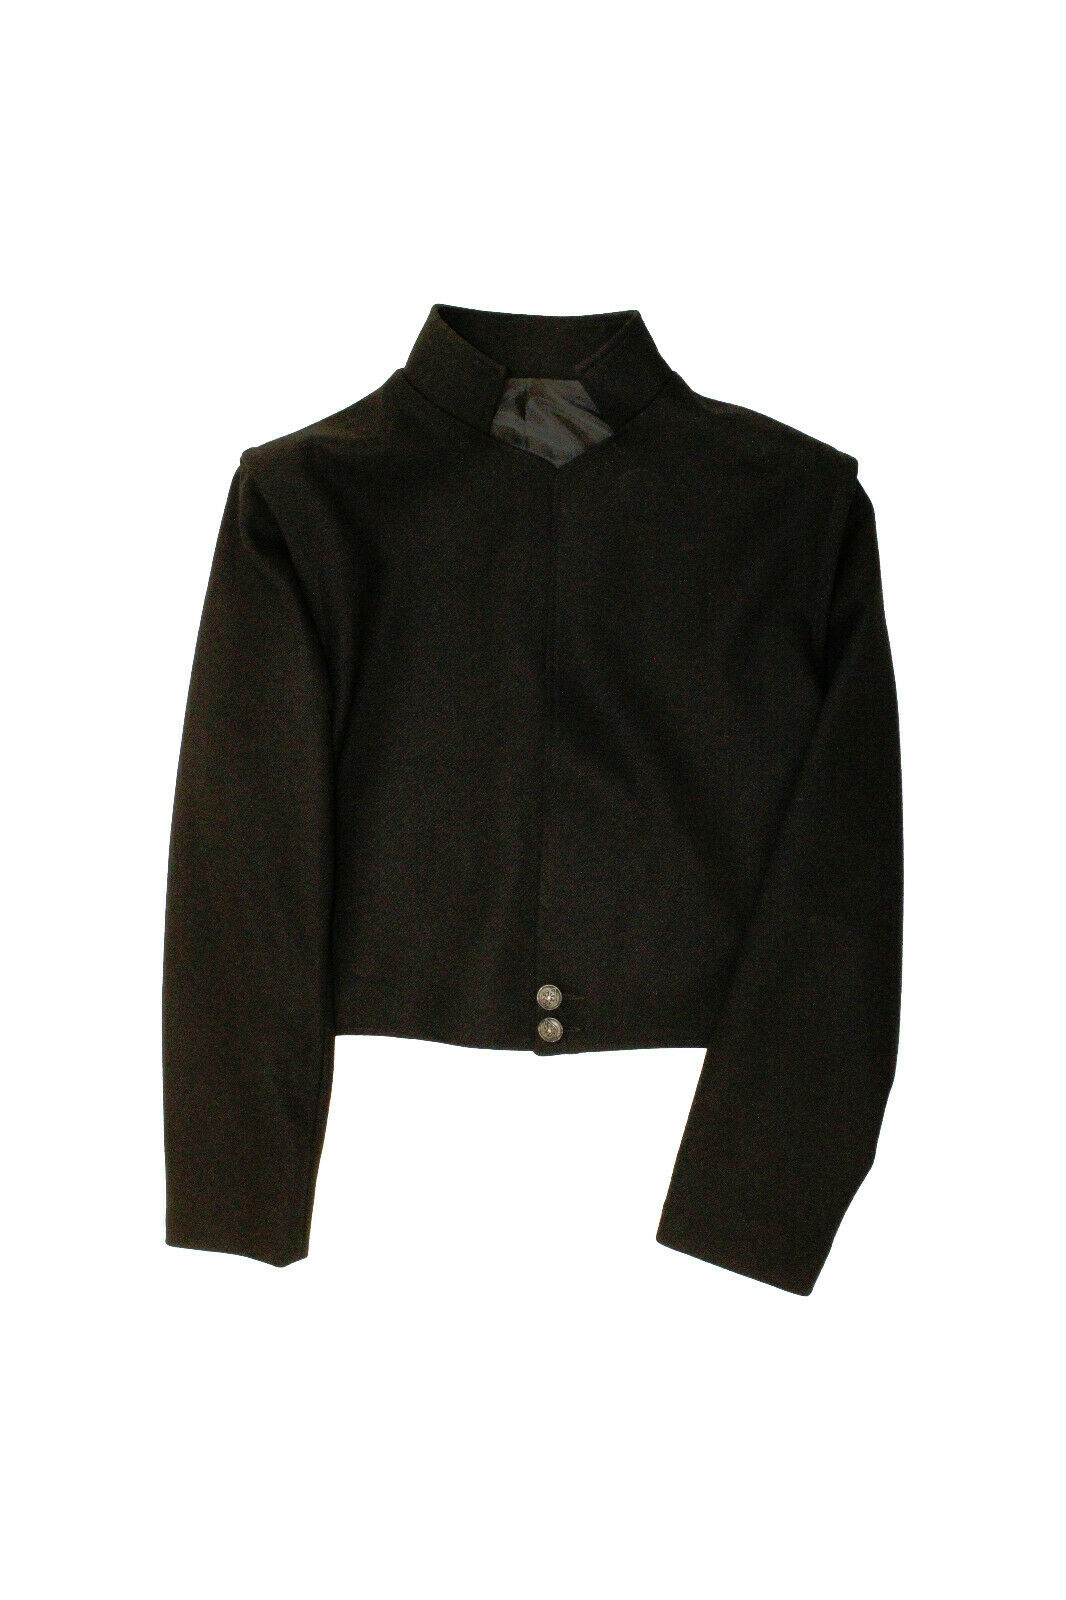 NEW Black LOWLANDER Jacket with zip sleeves 100% Wool - reduced to clear